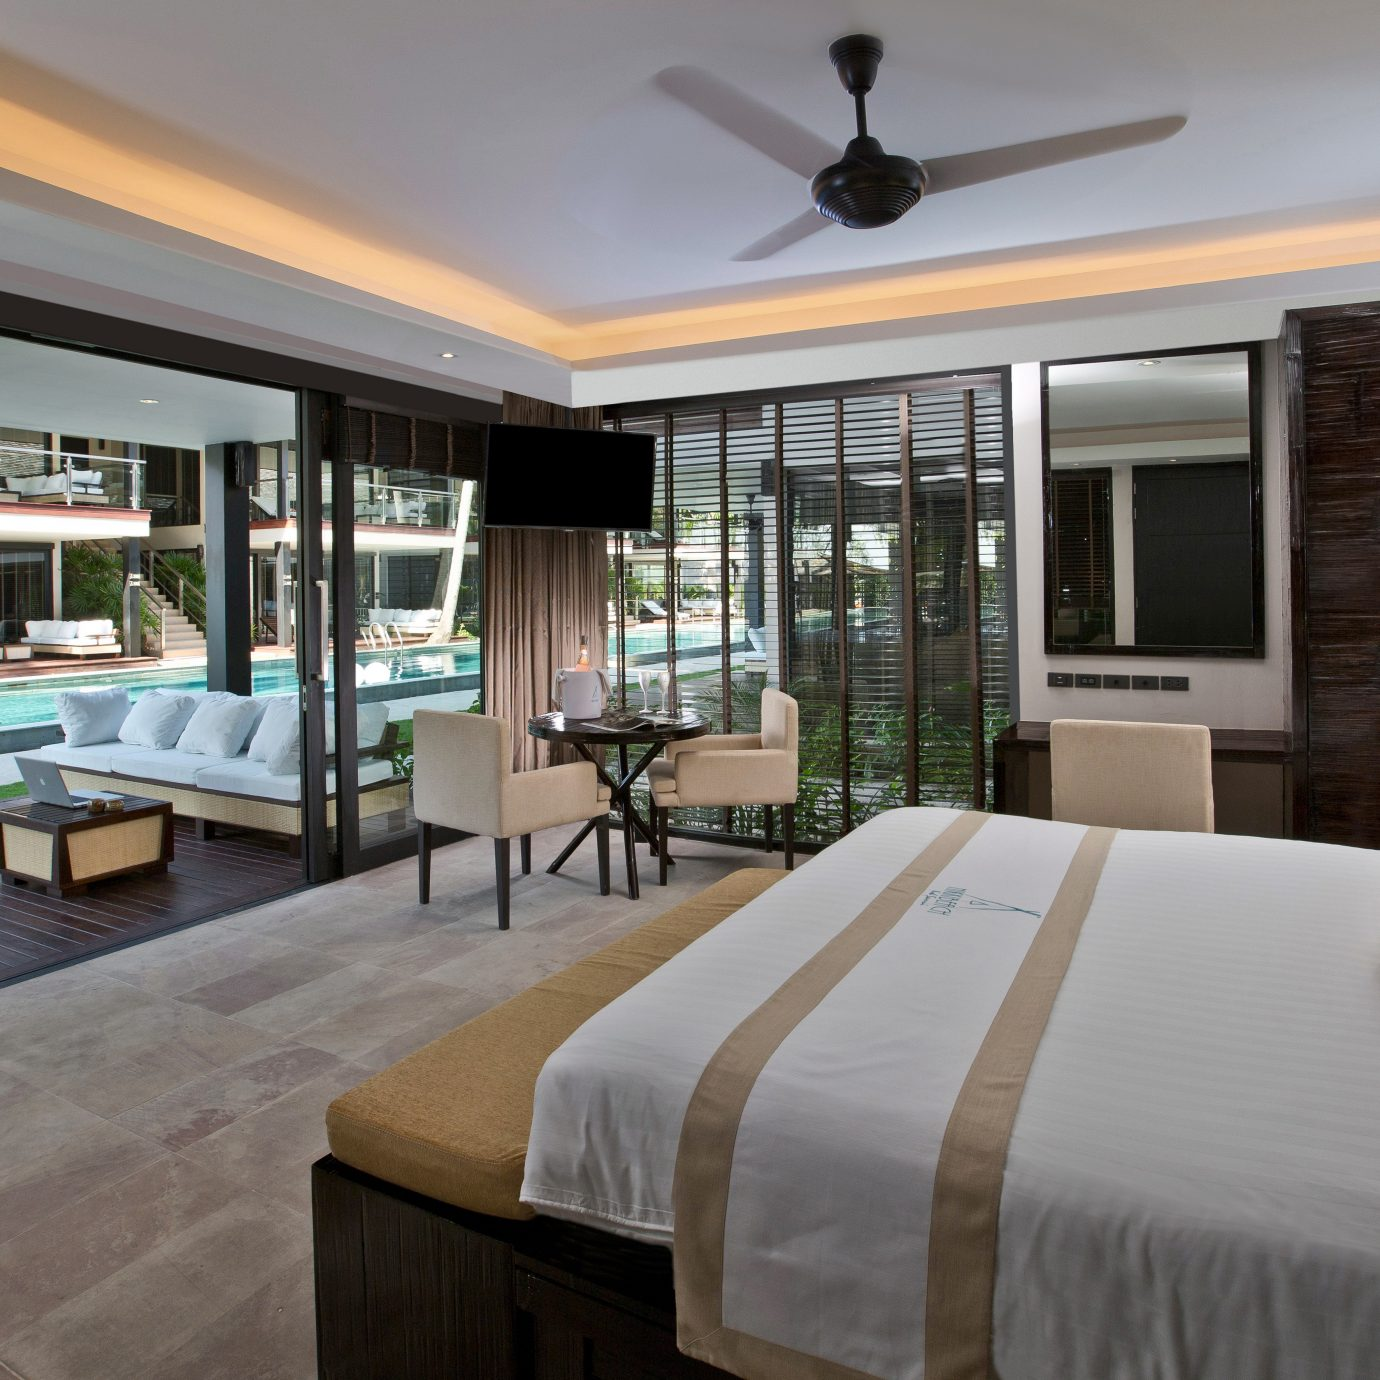 Bedroom Modern Resort Suite sofa property condominium living room home Villa